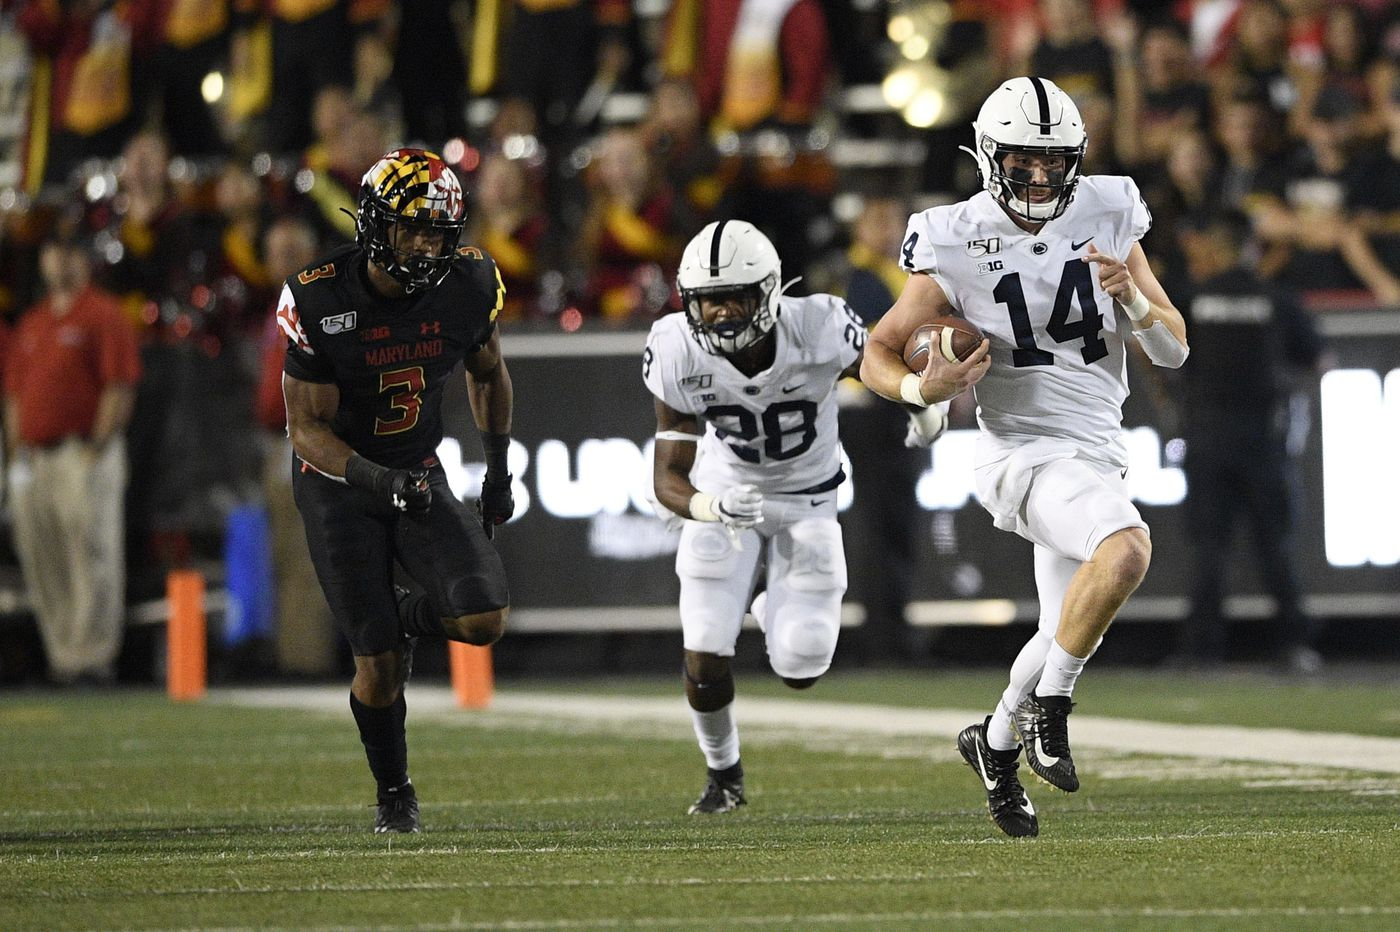 Sean Clifford has a big first half, and Penn State rolls to a 59-0 victory over Maryland in Big Ten opener